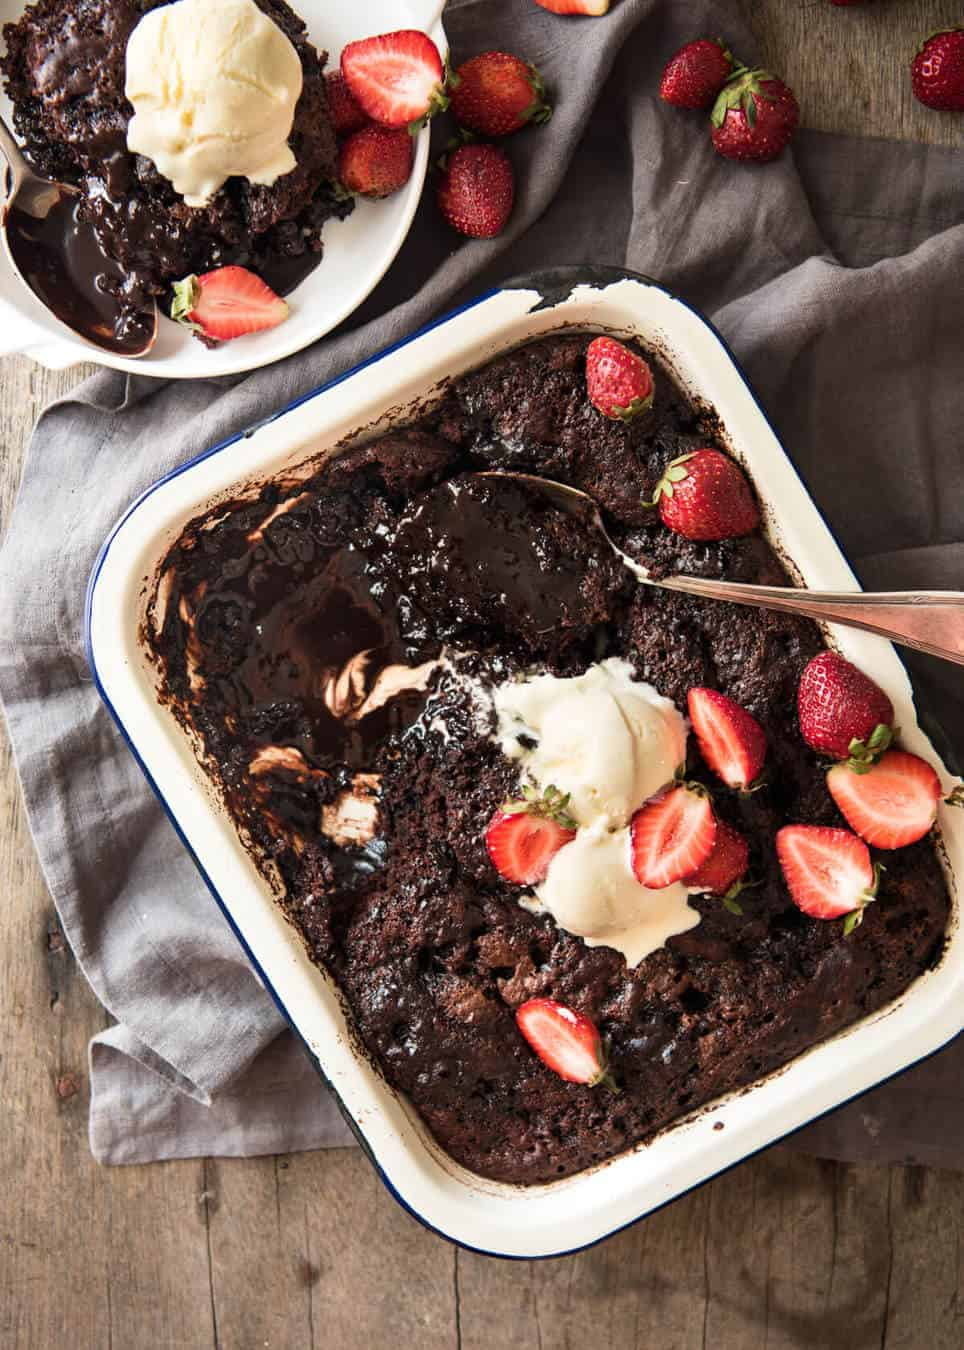 Chocolate Self Saucing Pudding - 1 batter transforms into a moist chocolate cake with a beautiful silky chocolate sauce! 10 minutes active effort. www.recipetineats.com